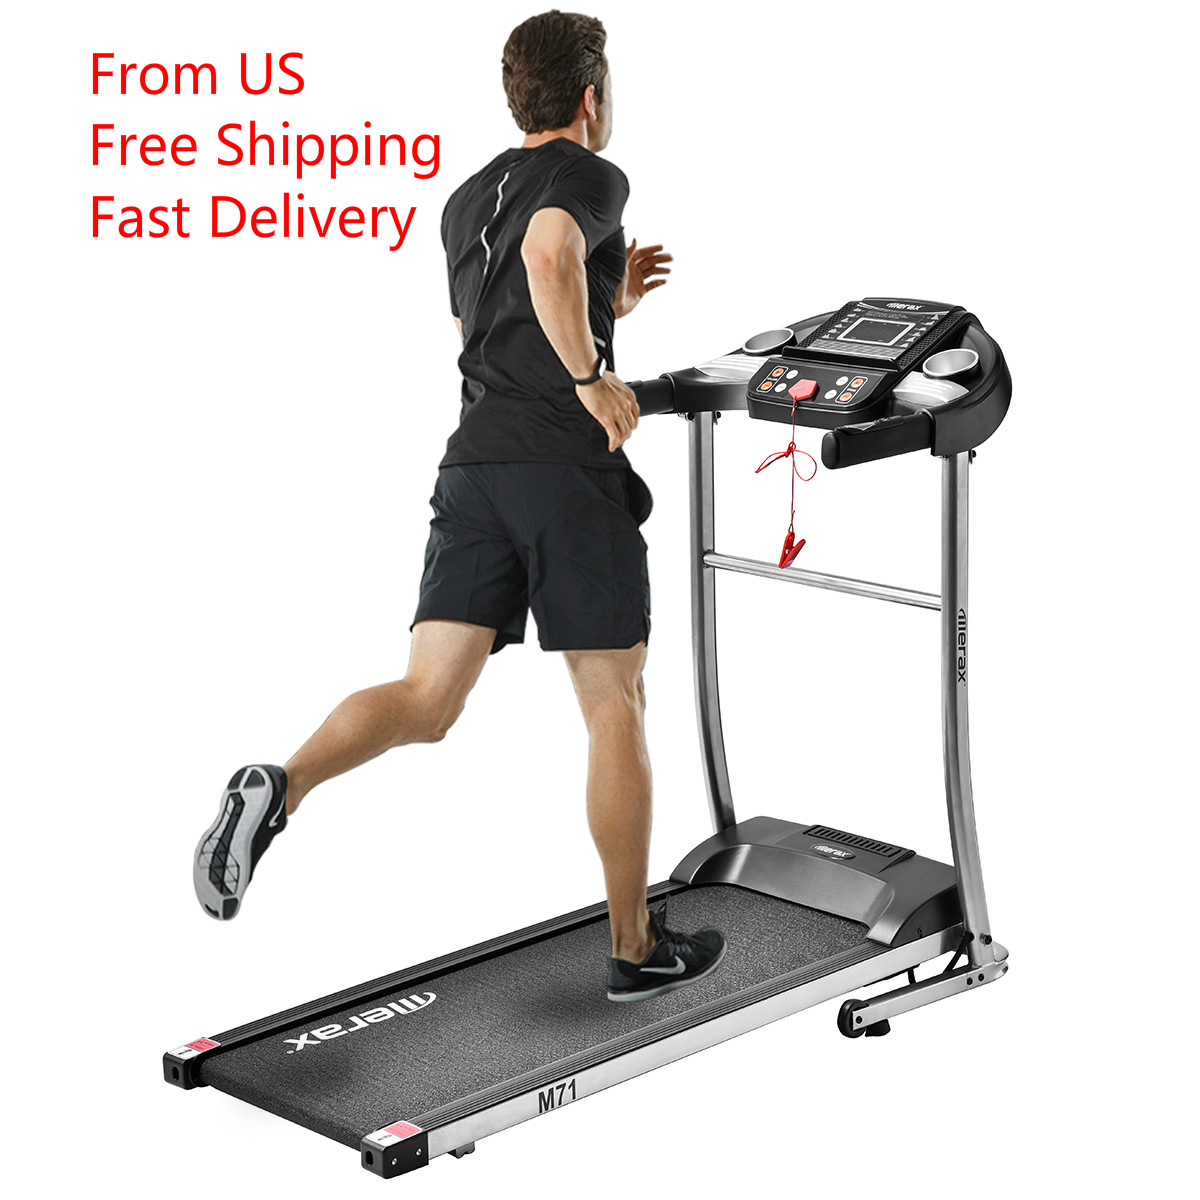 TREXM 0.8-10 KM/H Speed Levels Treadmill Easy Assembly Folding Electric Treadmill Motorized Running Machine With  LED Display